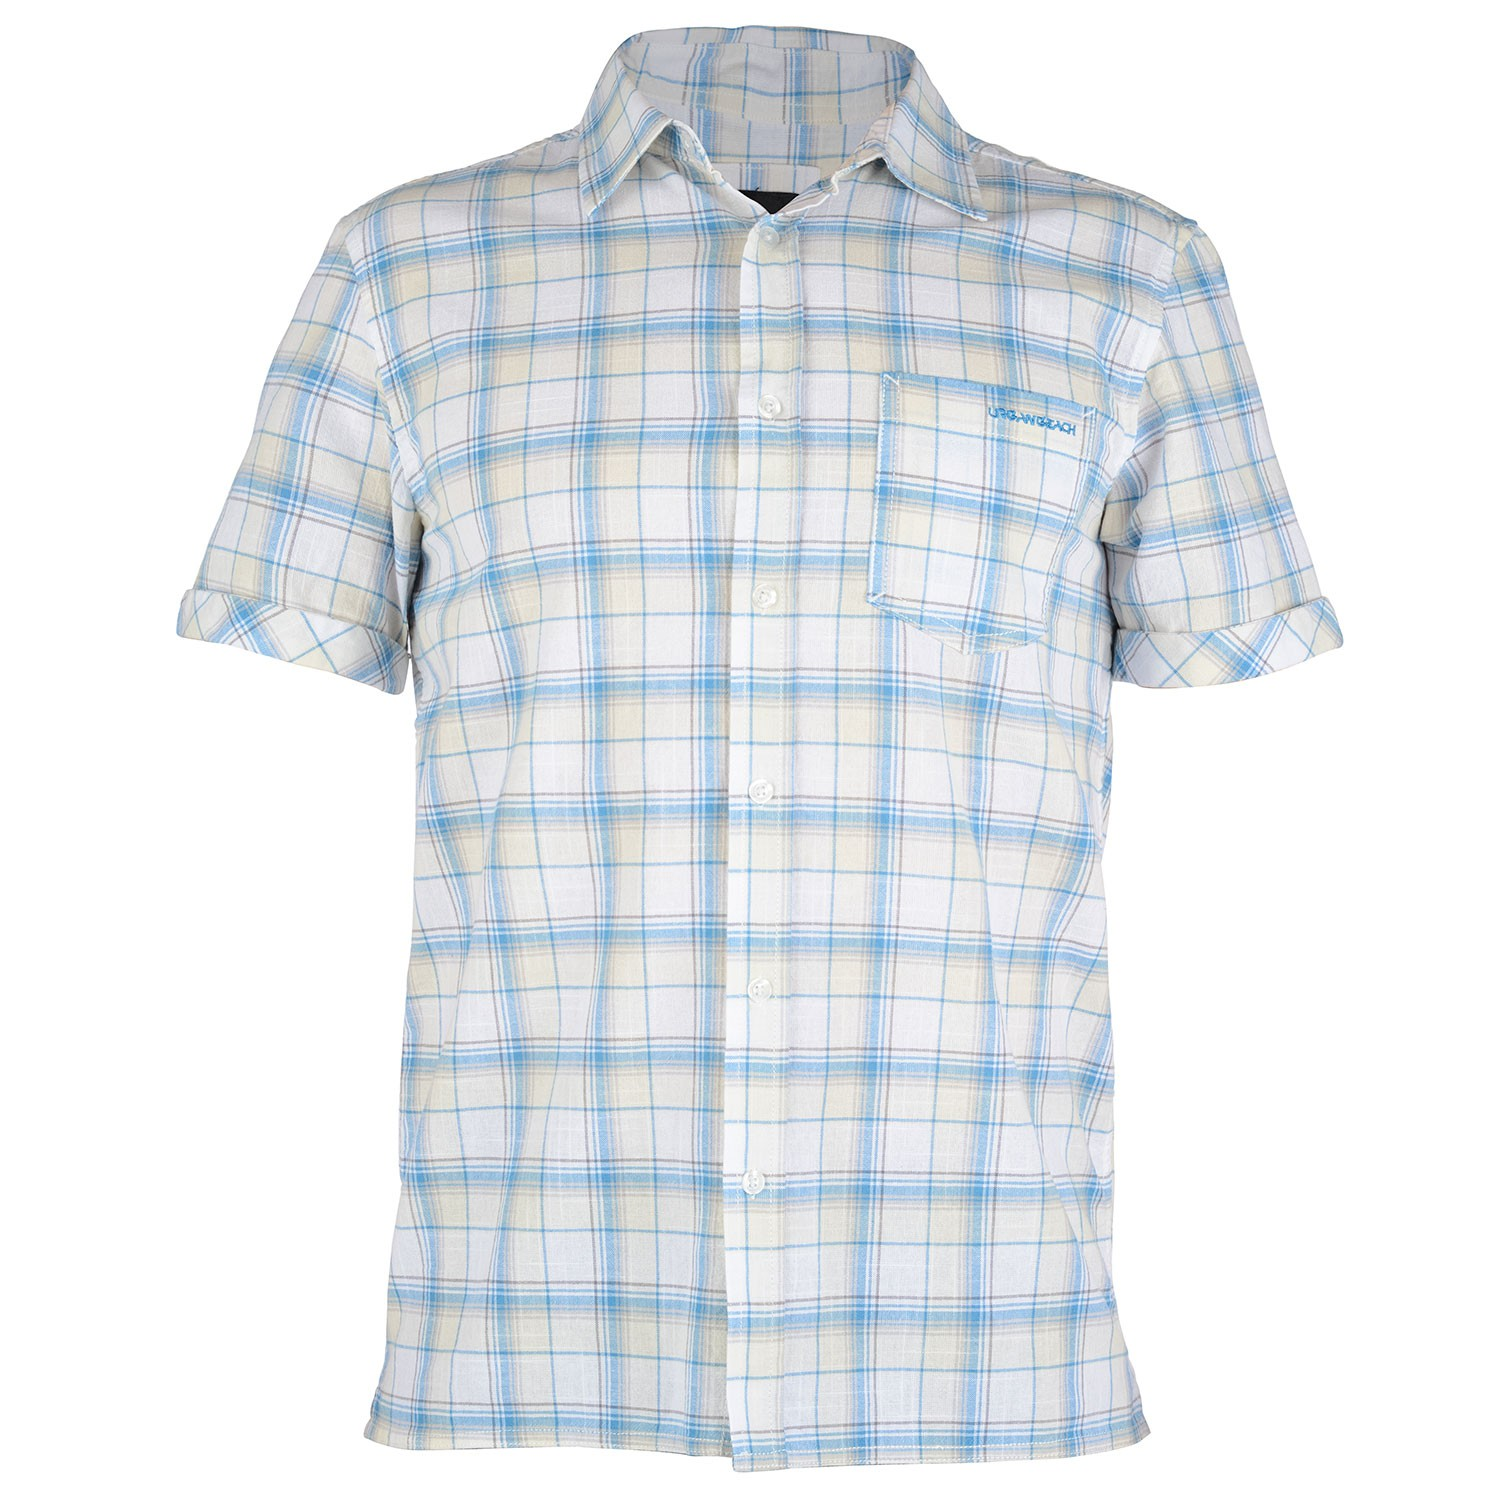 Find great deals on eBay for checked shirts. Shop with confidence.